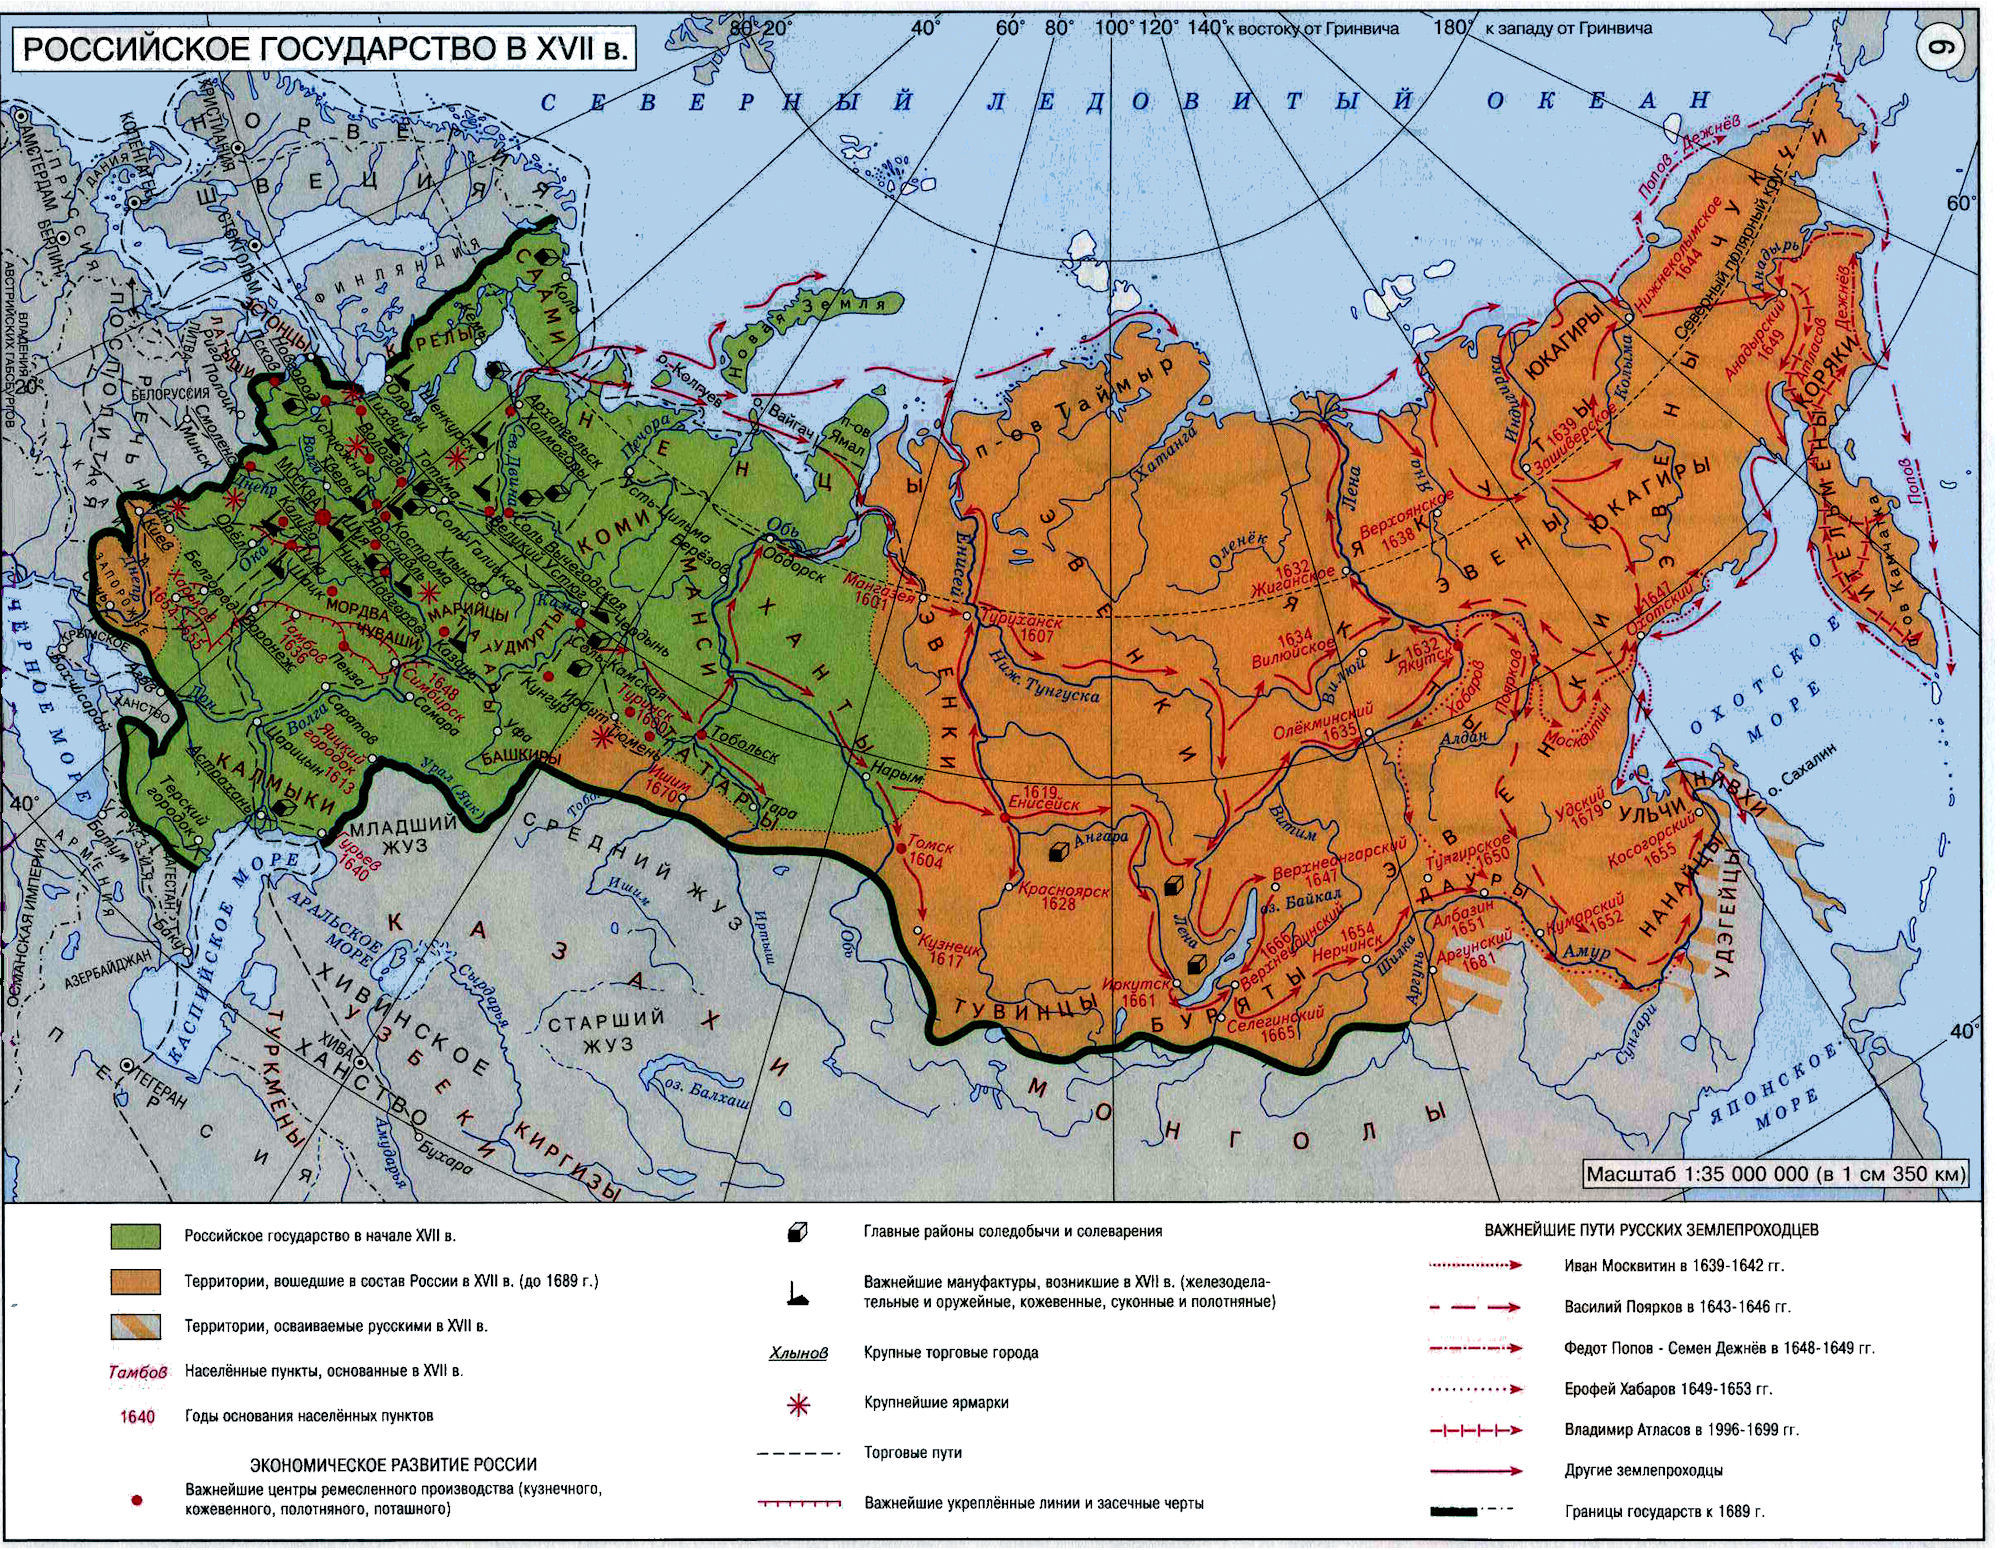 an introduction to the modern history of russia Other articles where history of russia is discussed: russia: prehistory and the rise of the rus:is now the territory of russia since the 2nd millennium bce, but little is known about their ethnic identity, institutions, and activities.